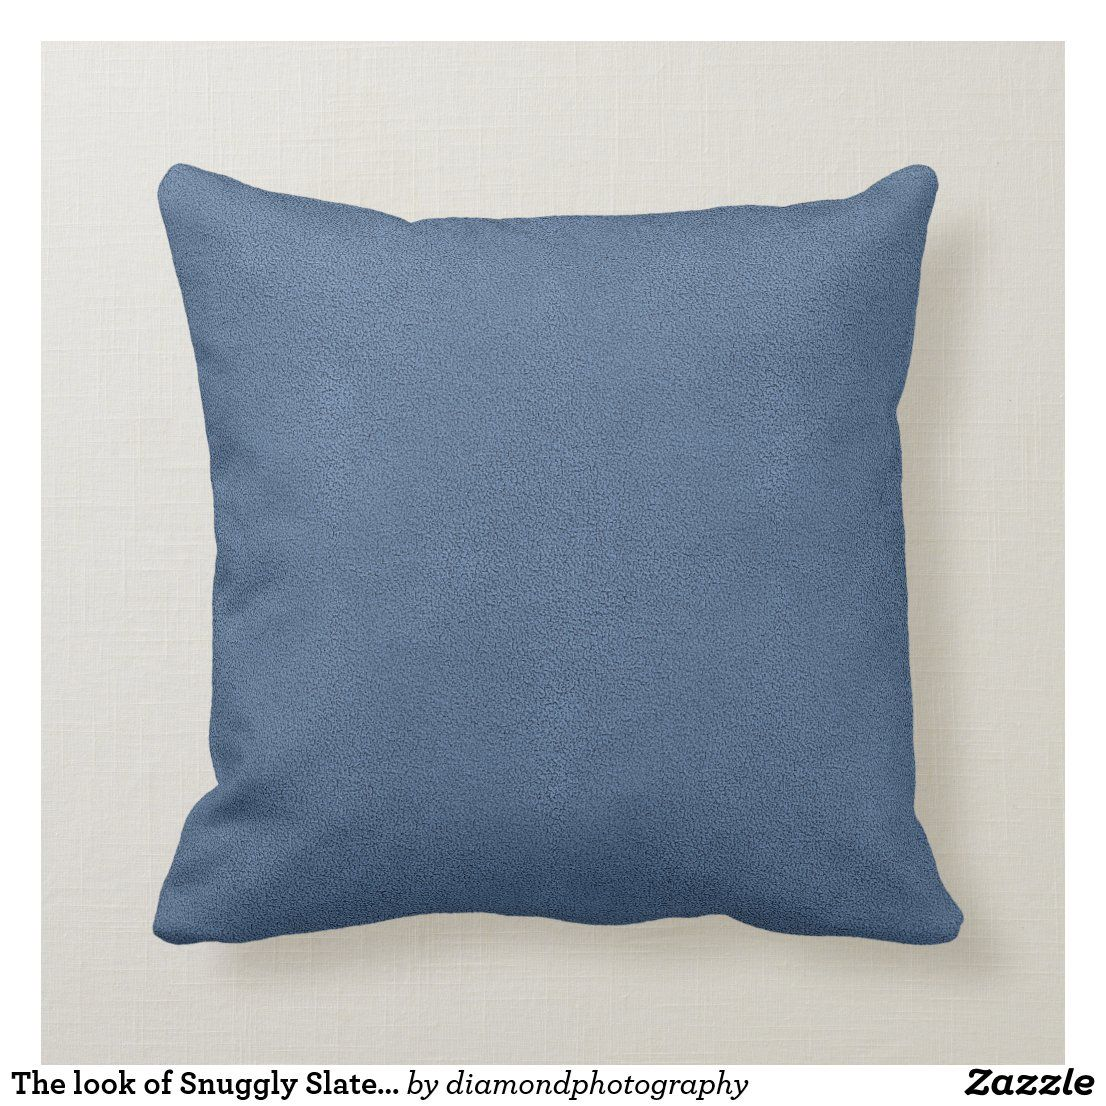 The Look Of Snuggly Slate Blue Suede Texture Throw Pillow Zazzle Com In 2021 Textured Throw Pillows Throw Pillows Blue And White Pillows